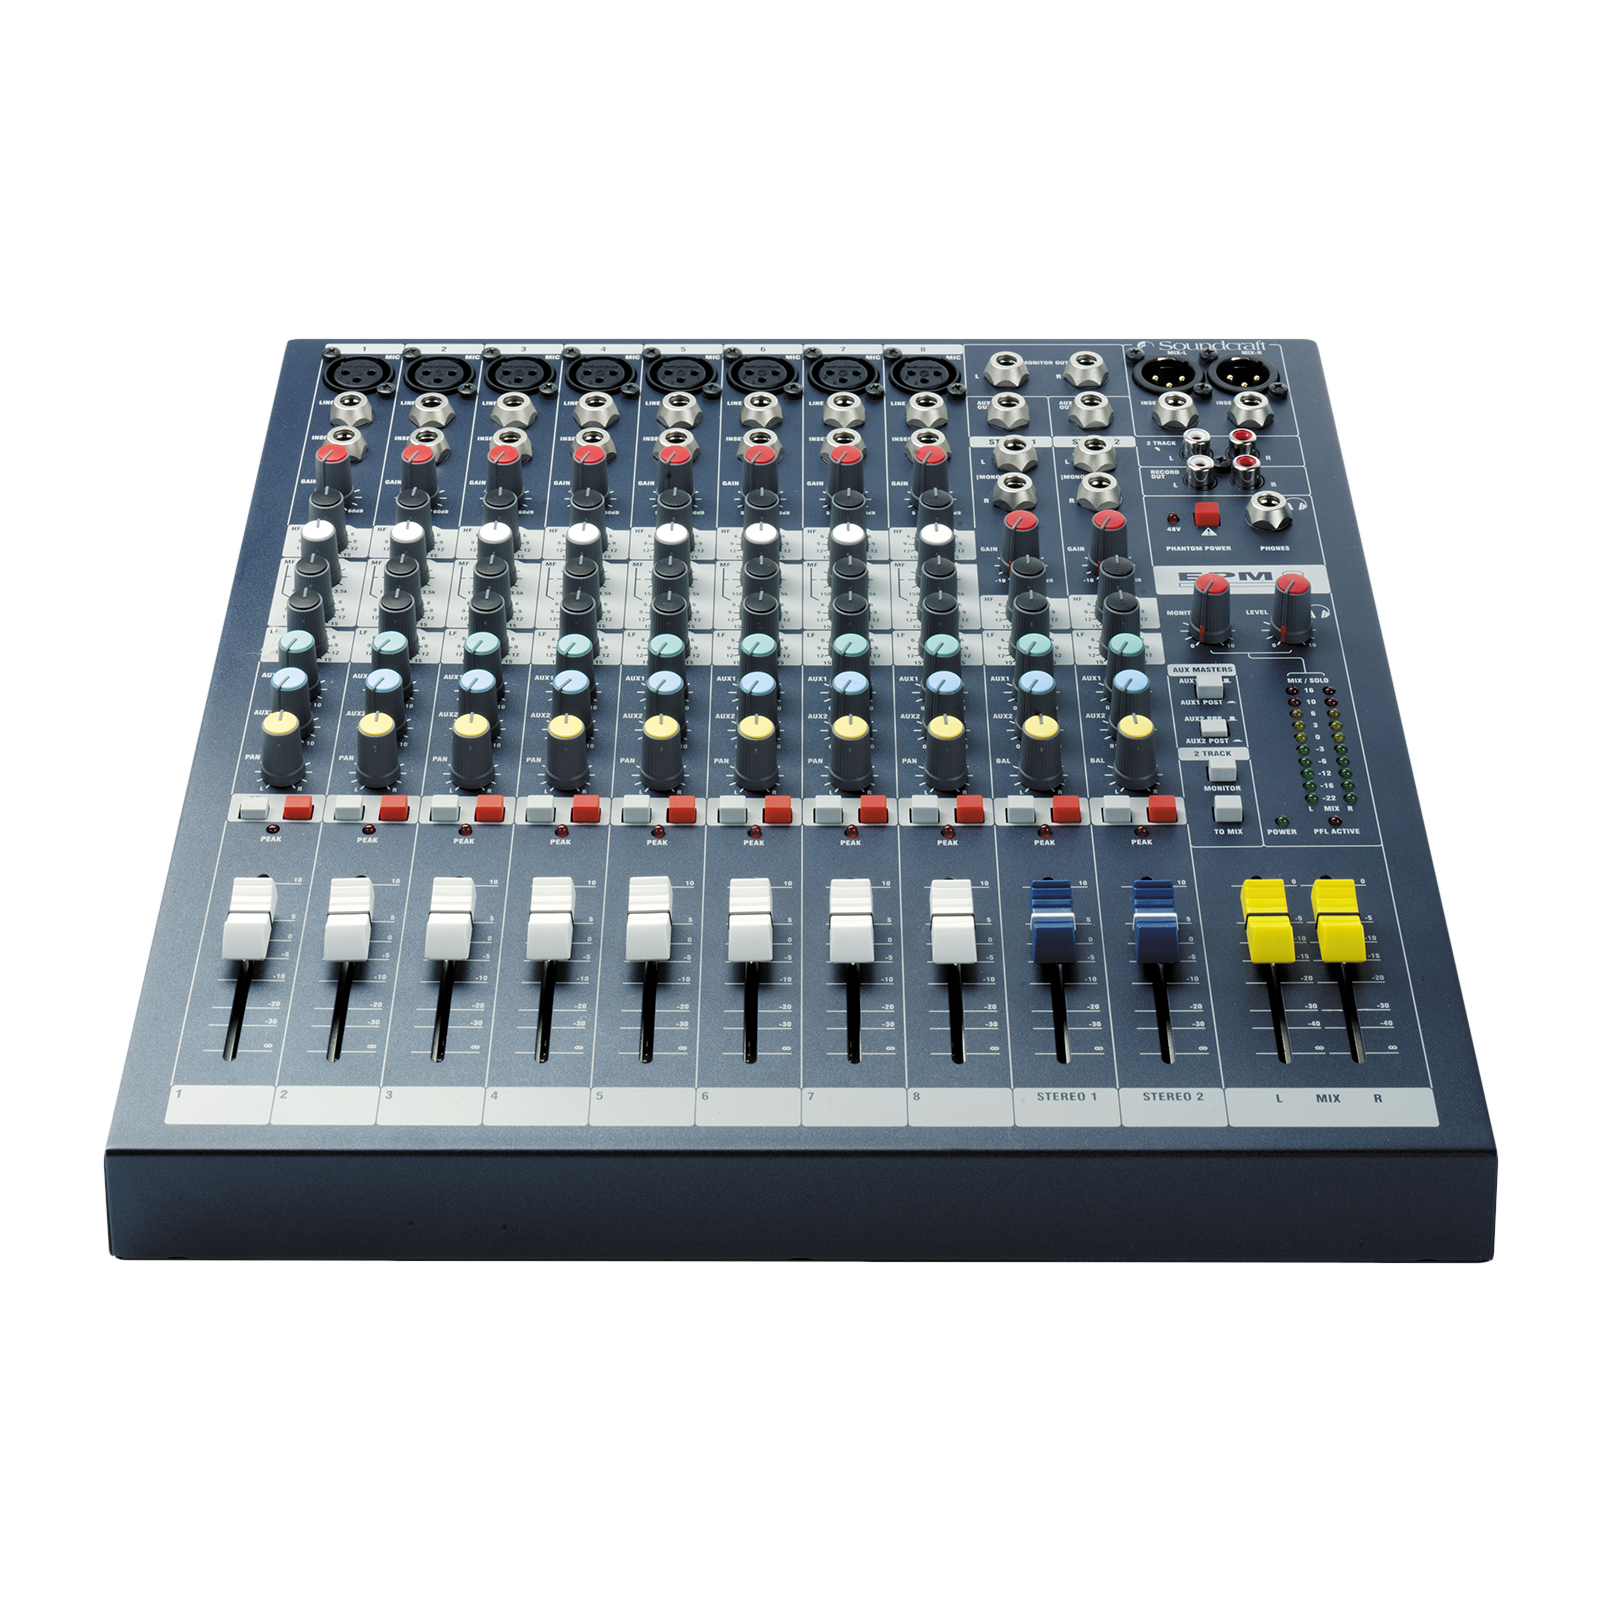 EPM8 - Dark Blue - A multipurpose mixer that carries the hallmarks of Soundcraft's professional heritage. - Detailshot 1